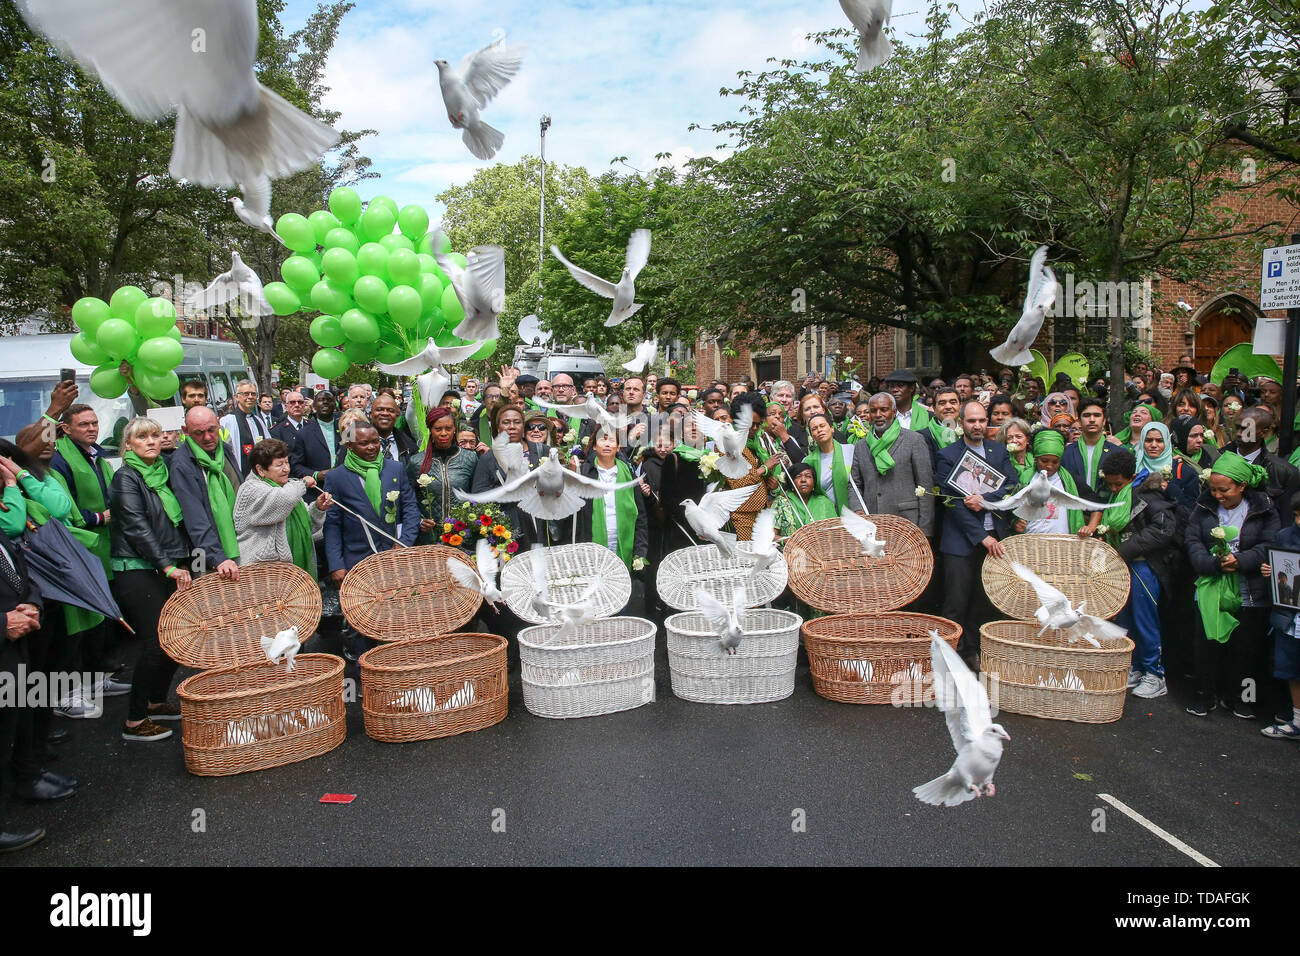 North Kensington, West London. UK 14 Jun 2019 - 72 white doves are released by survivors, family and friends of the victims following a service is held at St Helen's Church in North Kensington to commemorate the second anniversary of the Grenfell Tower fire. On 14 June 2017, just before 1:00Êam a fire broke out in the kitchen of the fourth floor flat at the 24-storey residential tower block in North Kensington, West London, which took the lives of 72 people. More than 70 others were injured and 223 people escaped.  Credit: Dinendra Haria/Alamy Live News - Stock Image